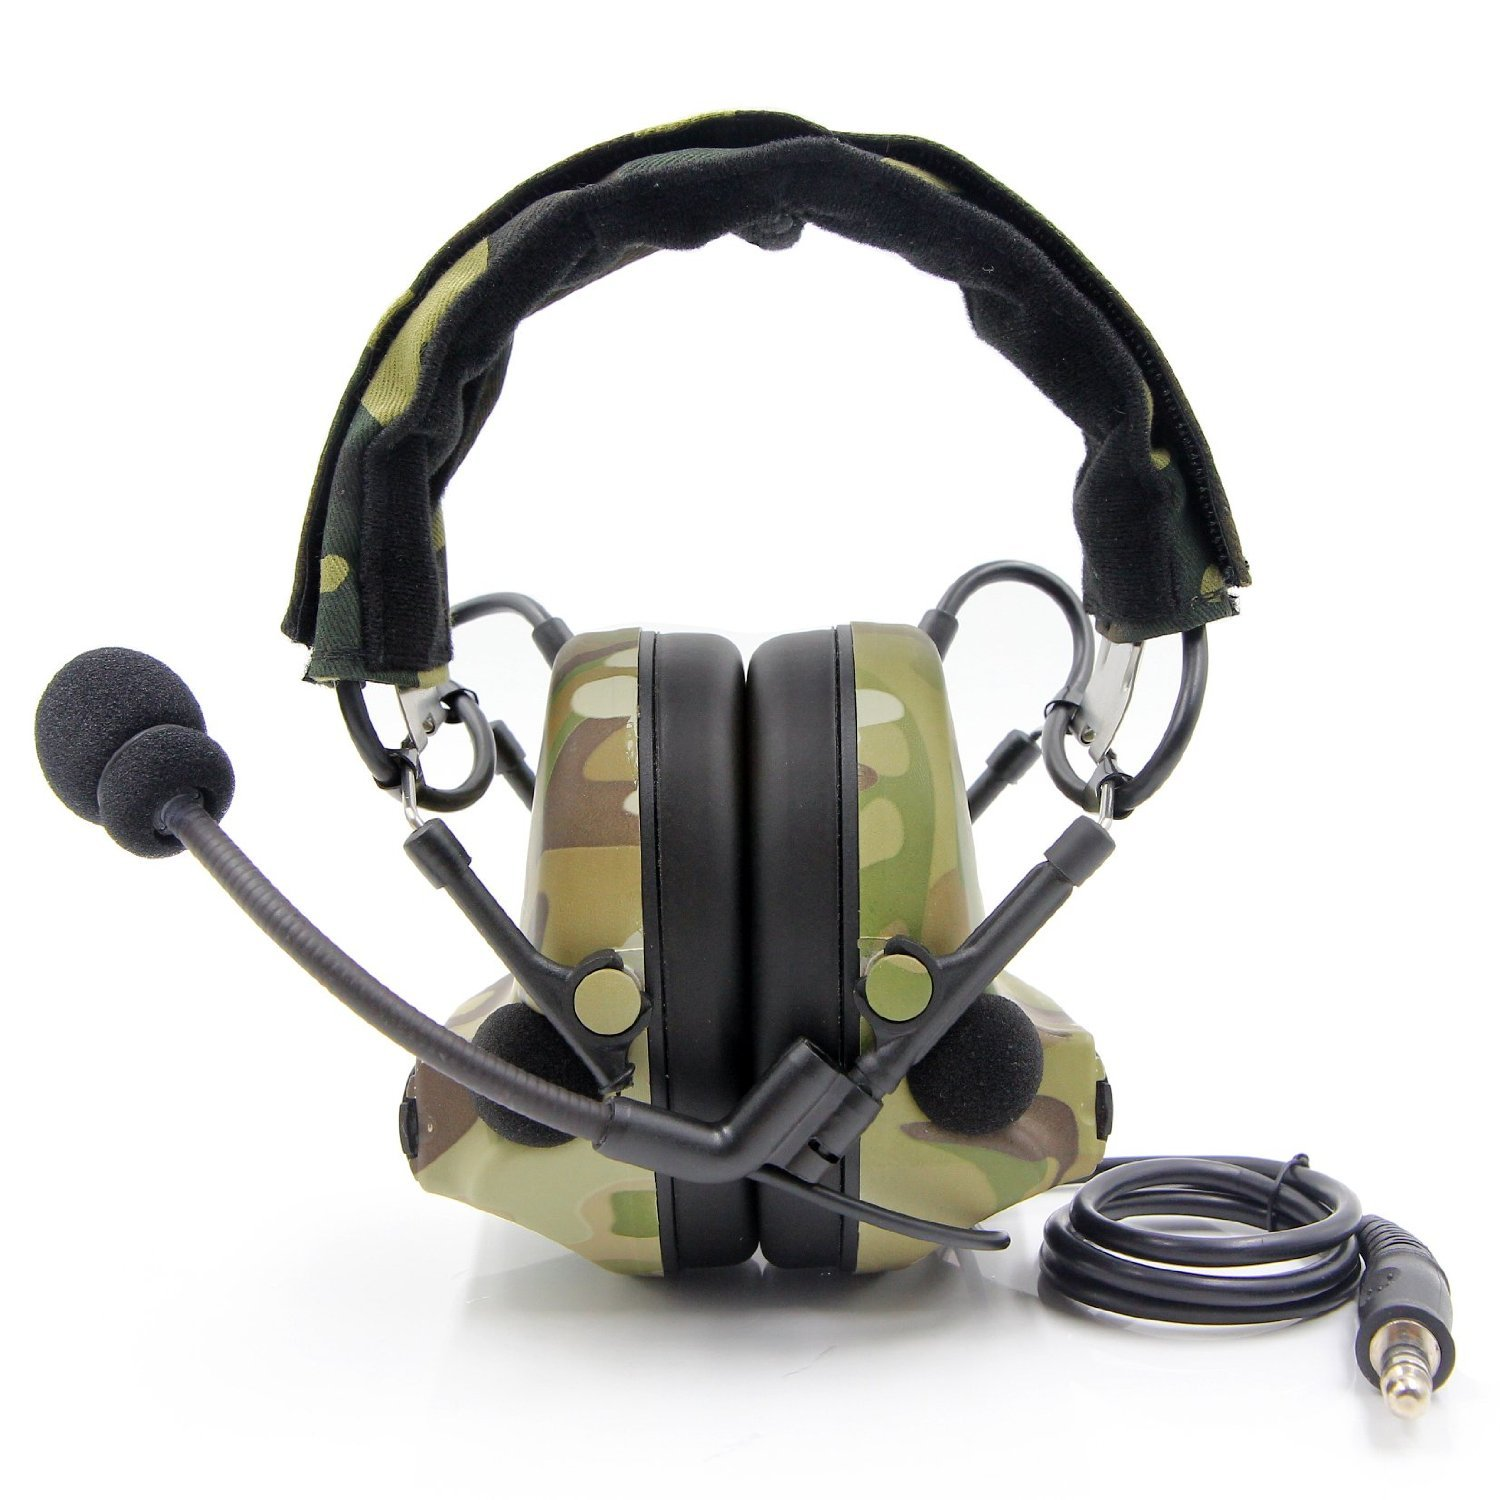 Anti-noise Electronic Tactical Earmuff Hearing Protector Ear Protection, Army Green by Dolphin